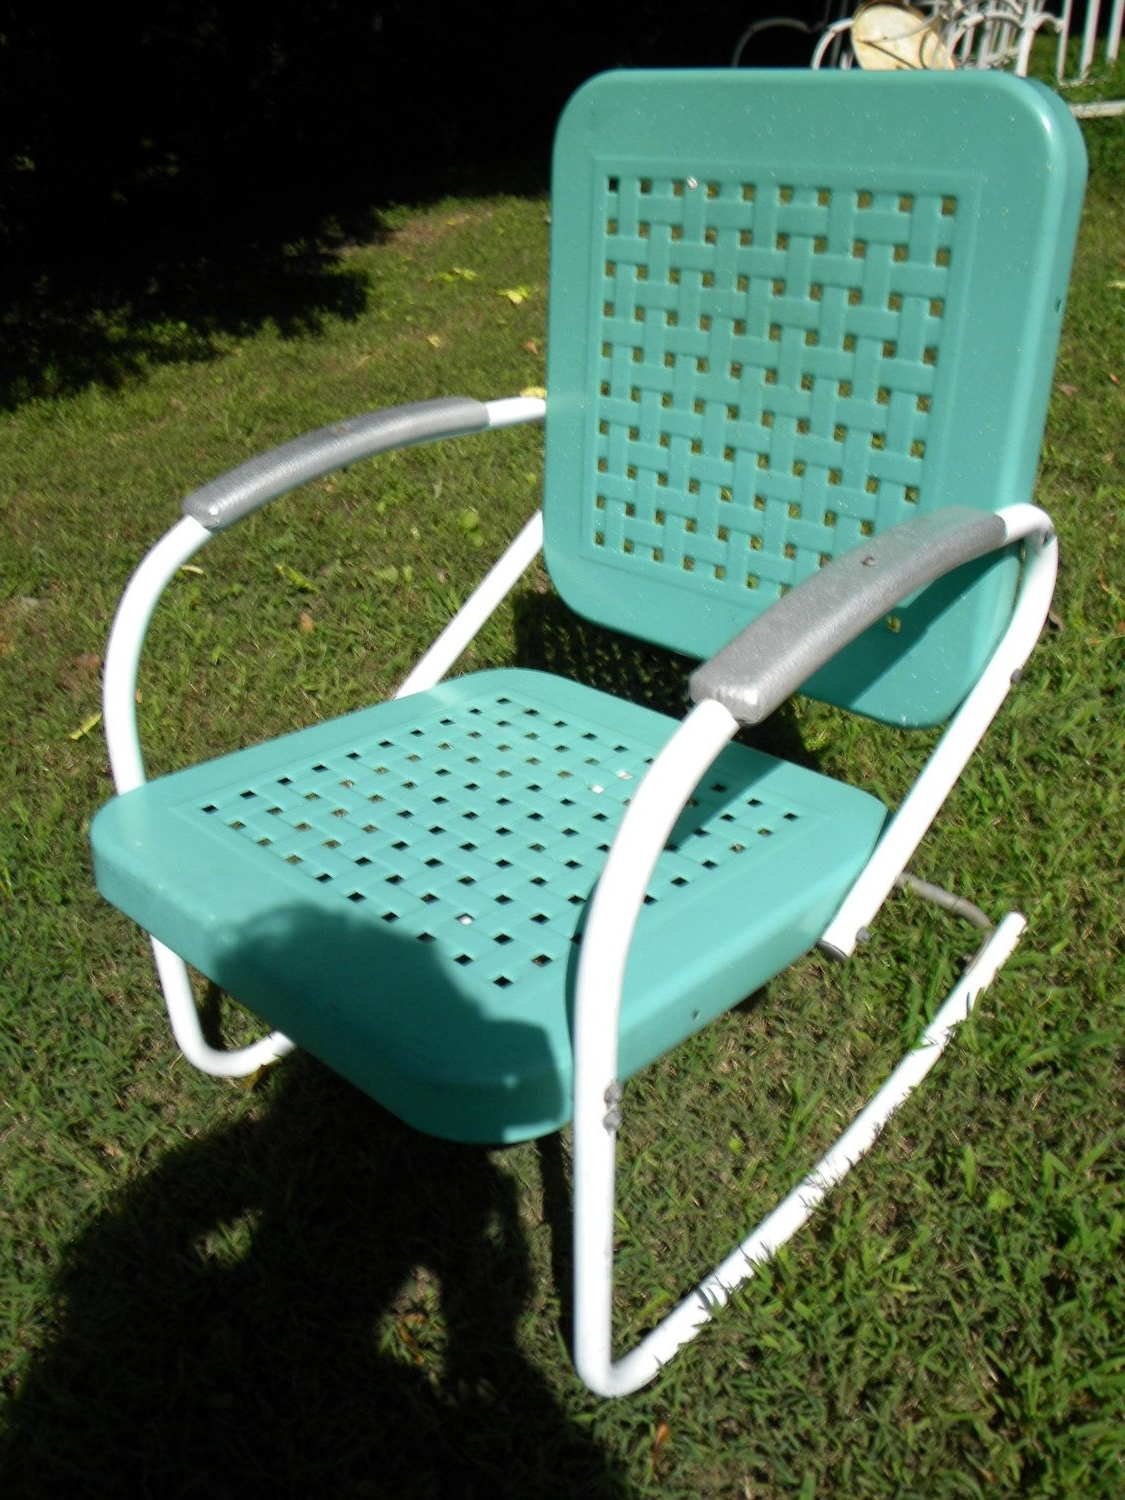 2019 Vtg 50s 60s Retro Outdoor Metal Lawn Patio Porch Rocking Chair Within Vintage Metal Rocking Patio Chairs (View 2 of 20)